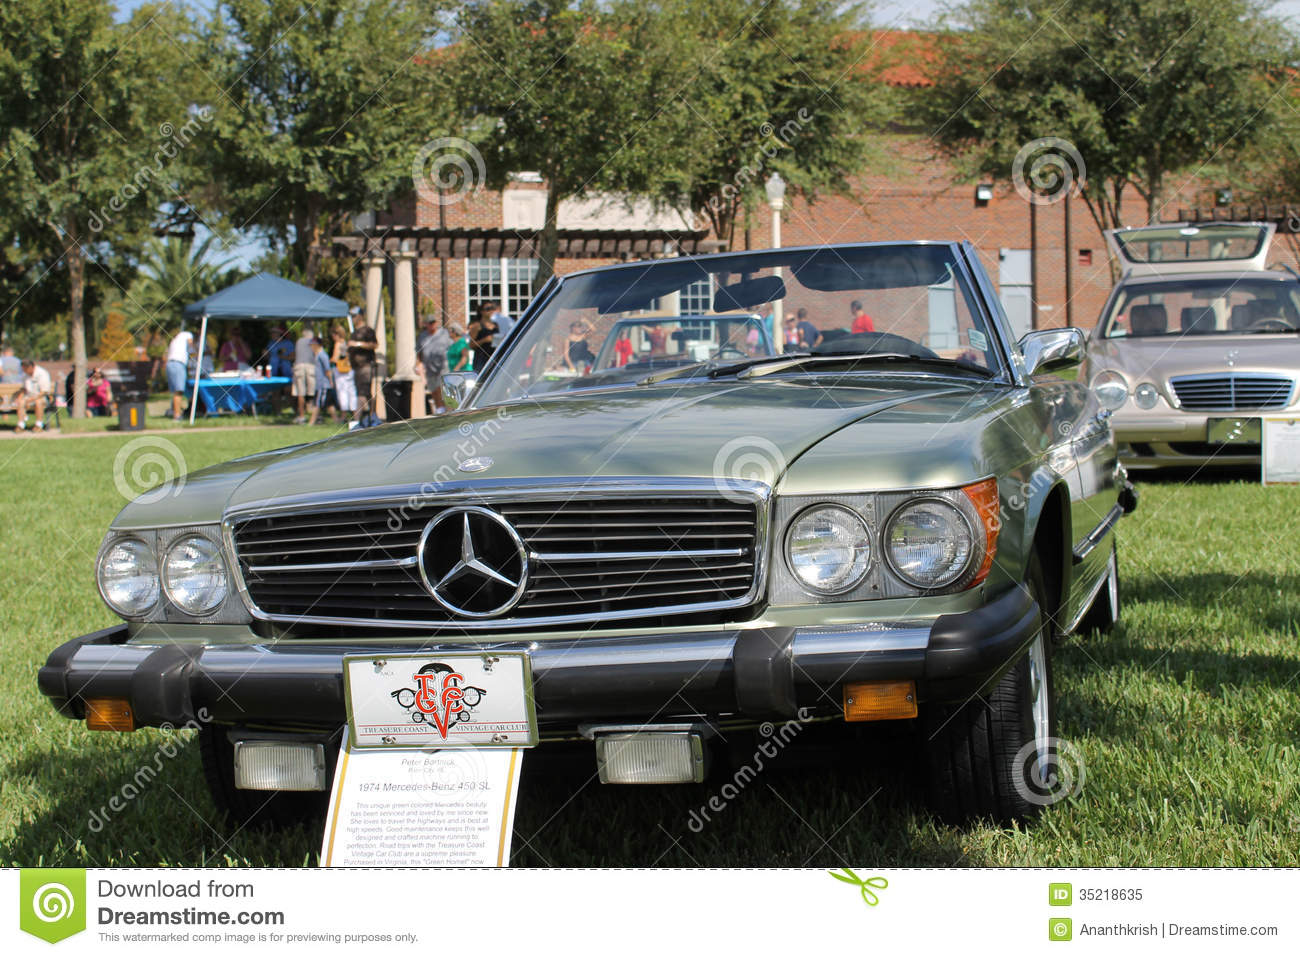 Old mercedes benz 450 sl car at the car show editorial - Mercedes car show ...